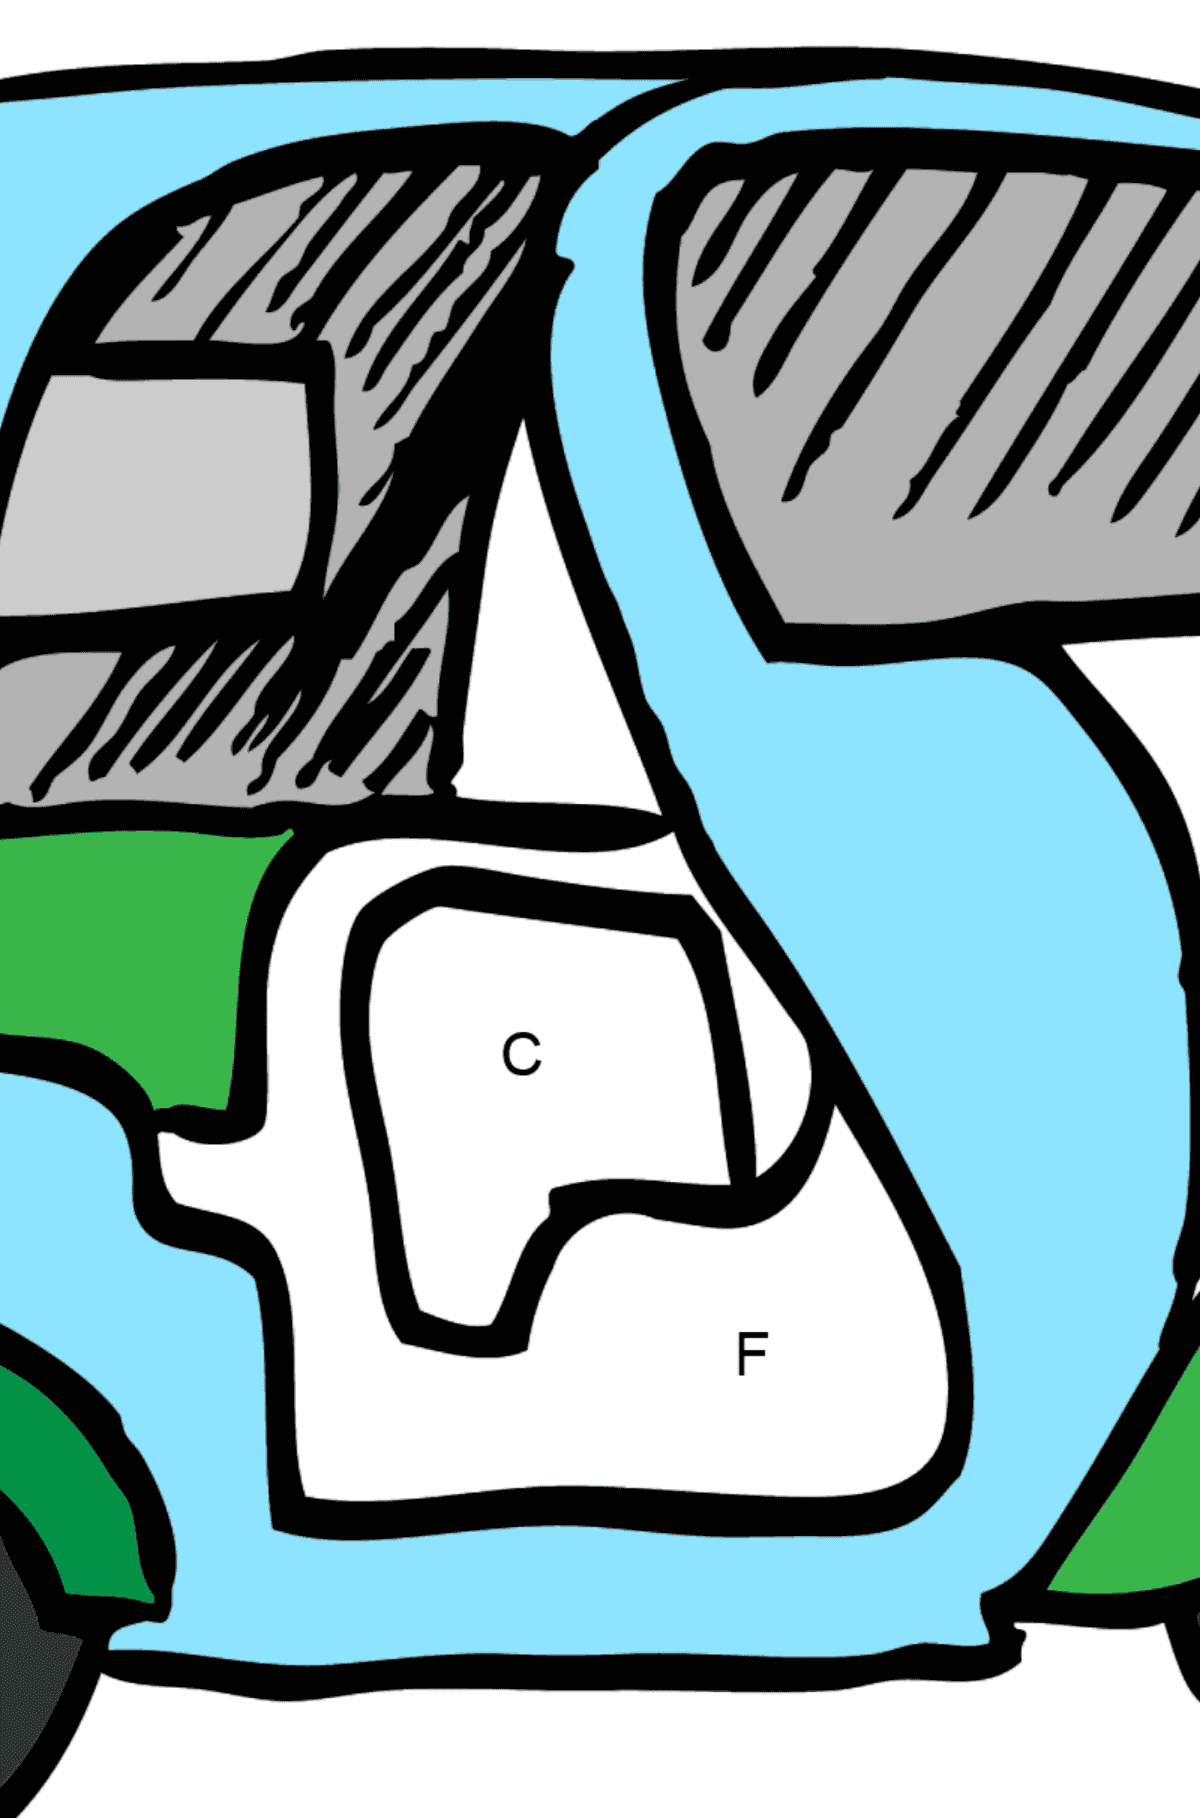 Coloring Page - A Moped is Carrying Mail - Coloring by Letters for Kids